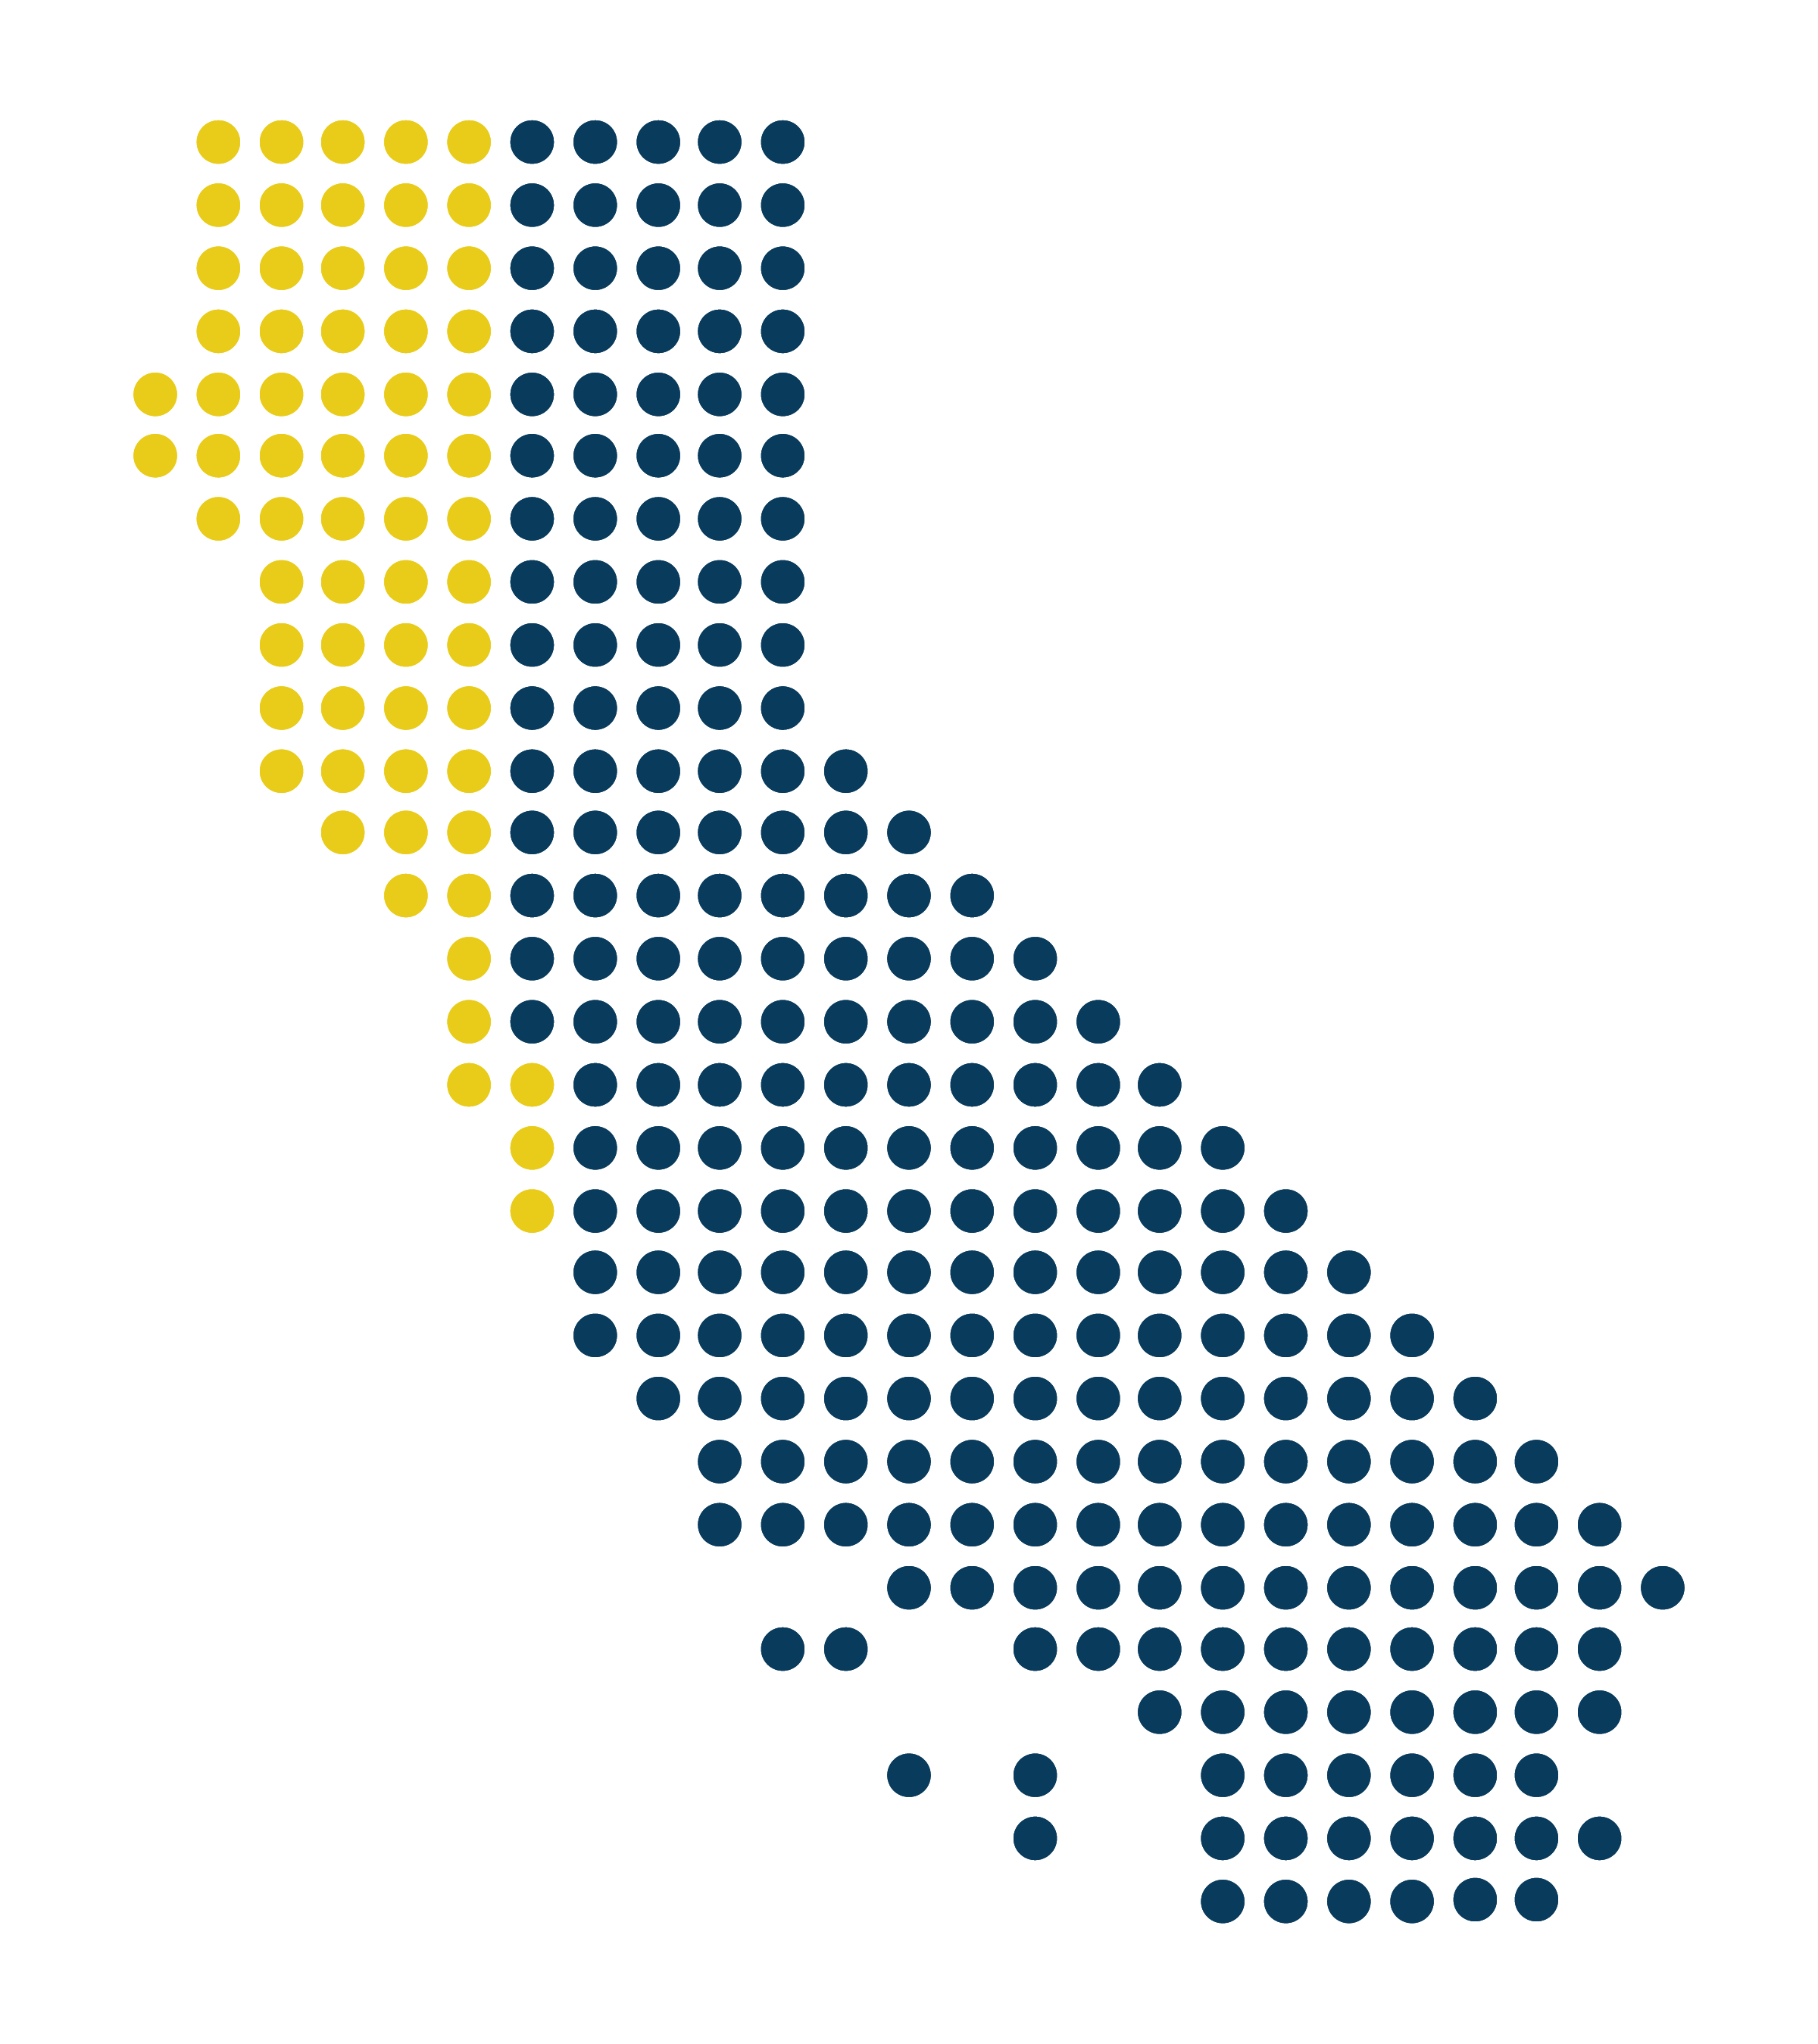 California graphic showing 20%